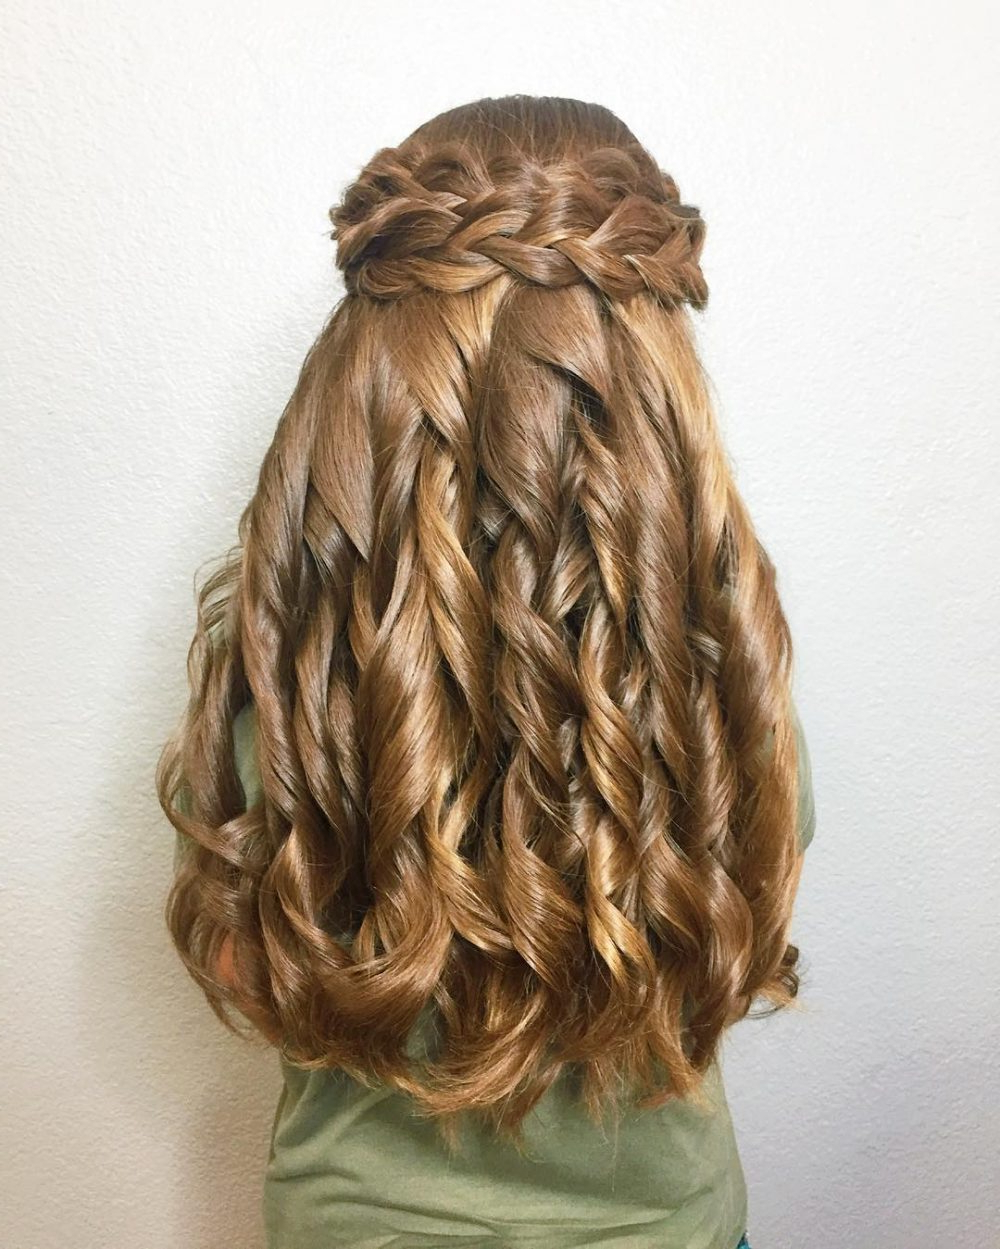 38 Cute Prom Hairstyles Guaranteed To Turn Heads For Recent Cute Medium Hairstyles For Prom (Gallery 19 of 20)